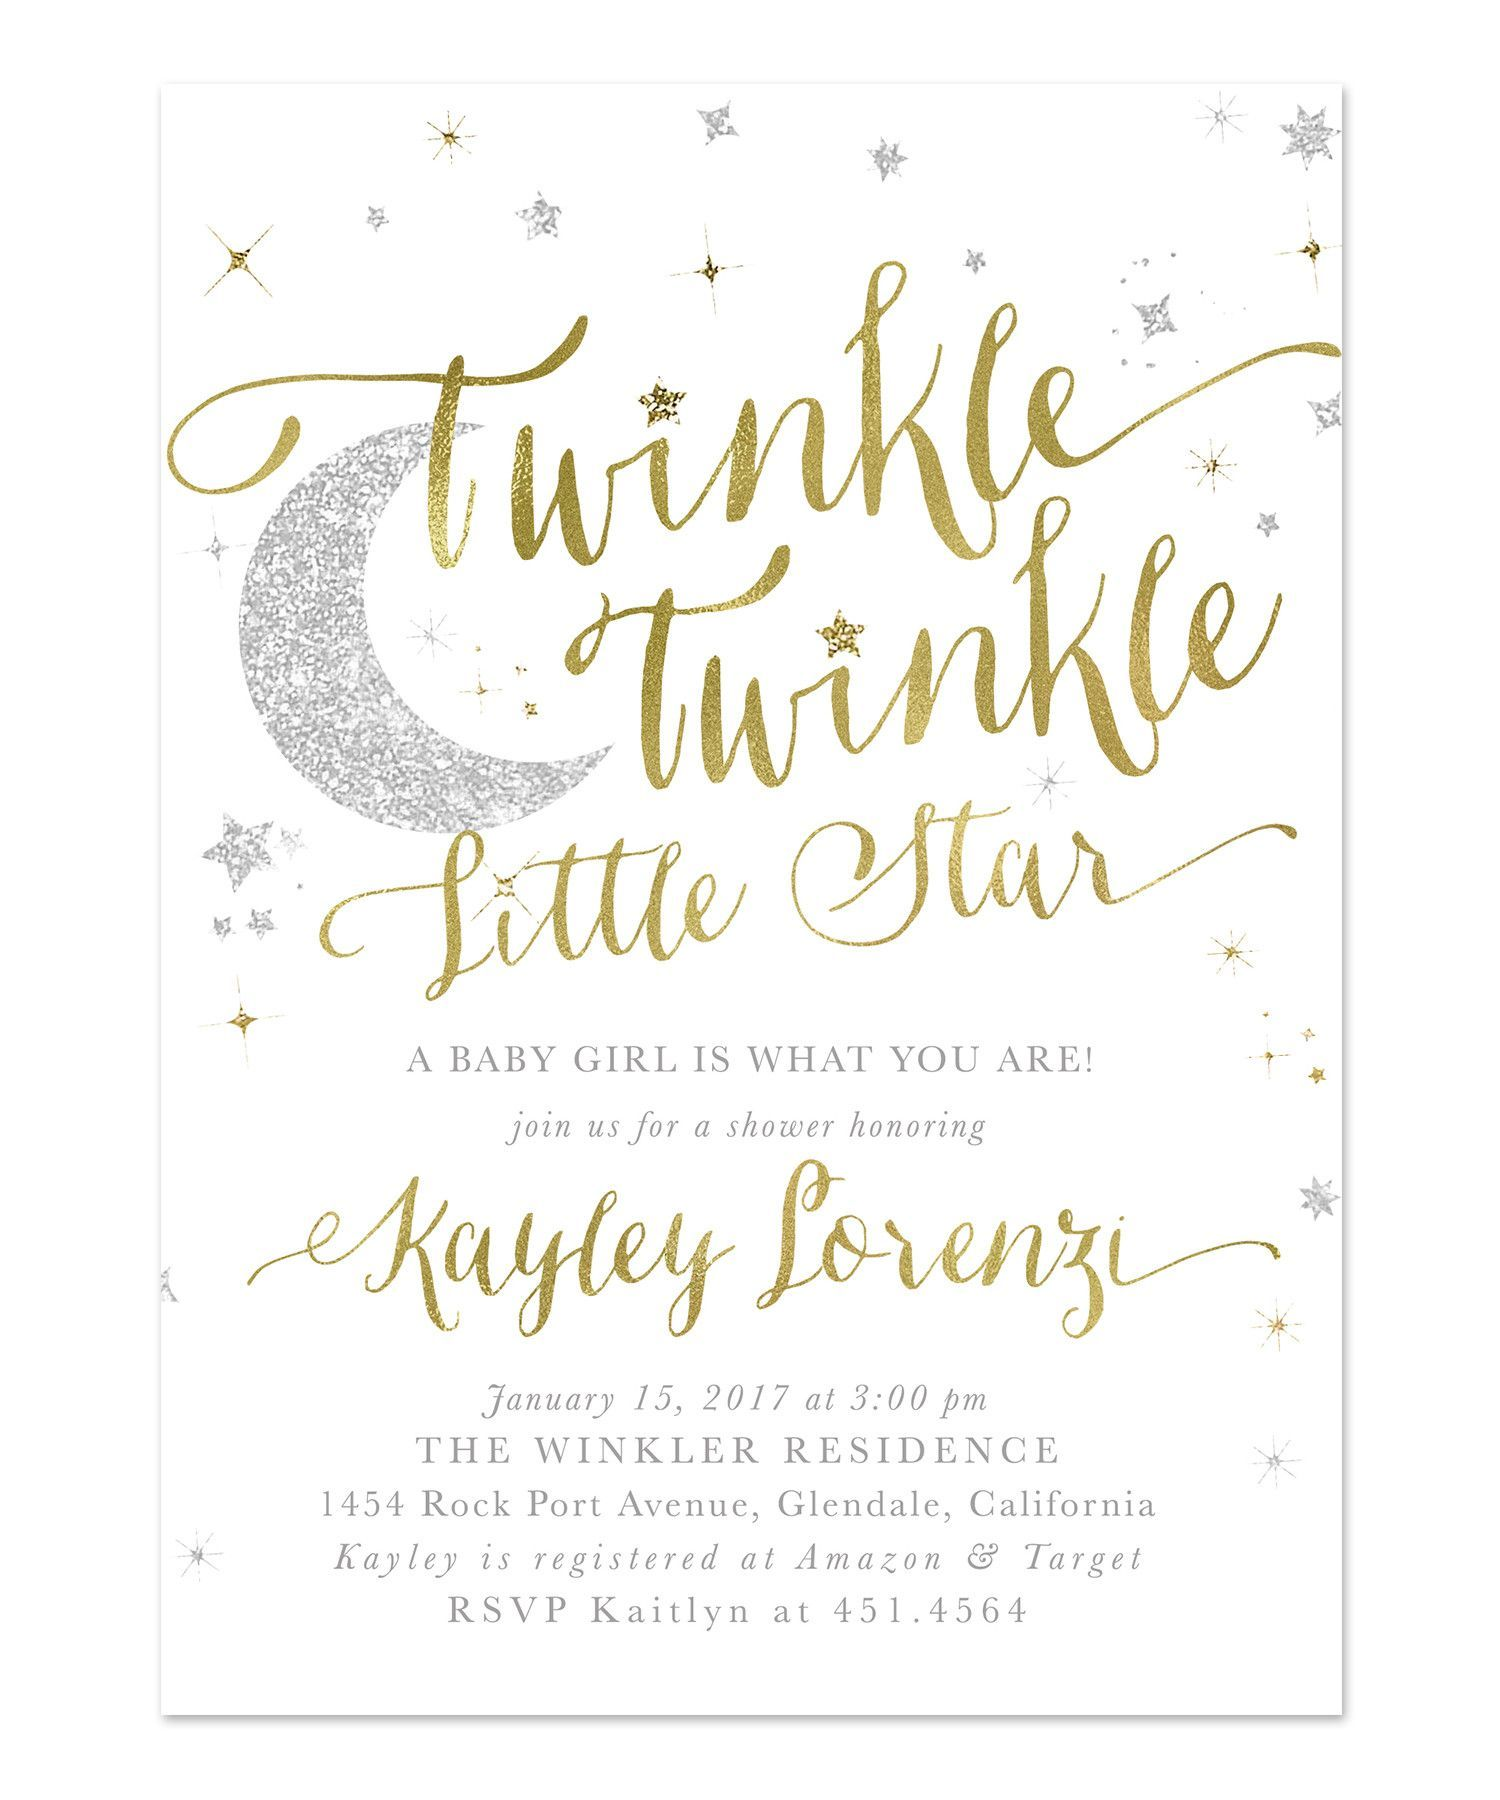 Twinkle Twinkle Little Star Baby Shower Invitation Wording : twinkle, little, shower, invitation, wording, Twinkle, Little, Shower, Invitation, {White}, Invitations,, Invitations, Pink,, Invites